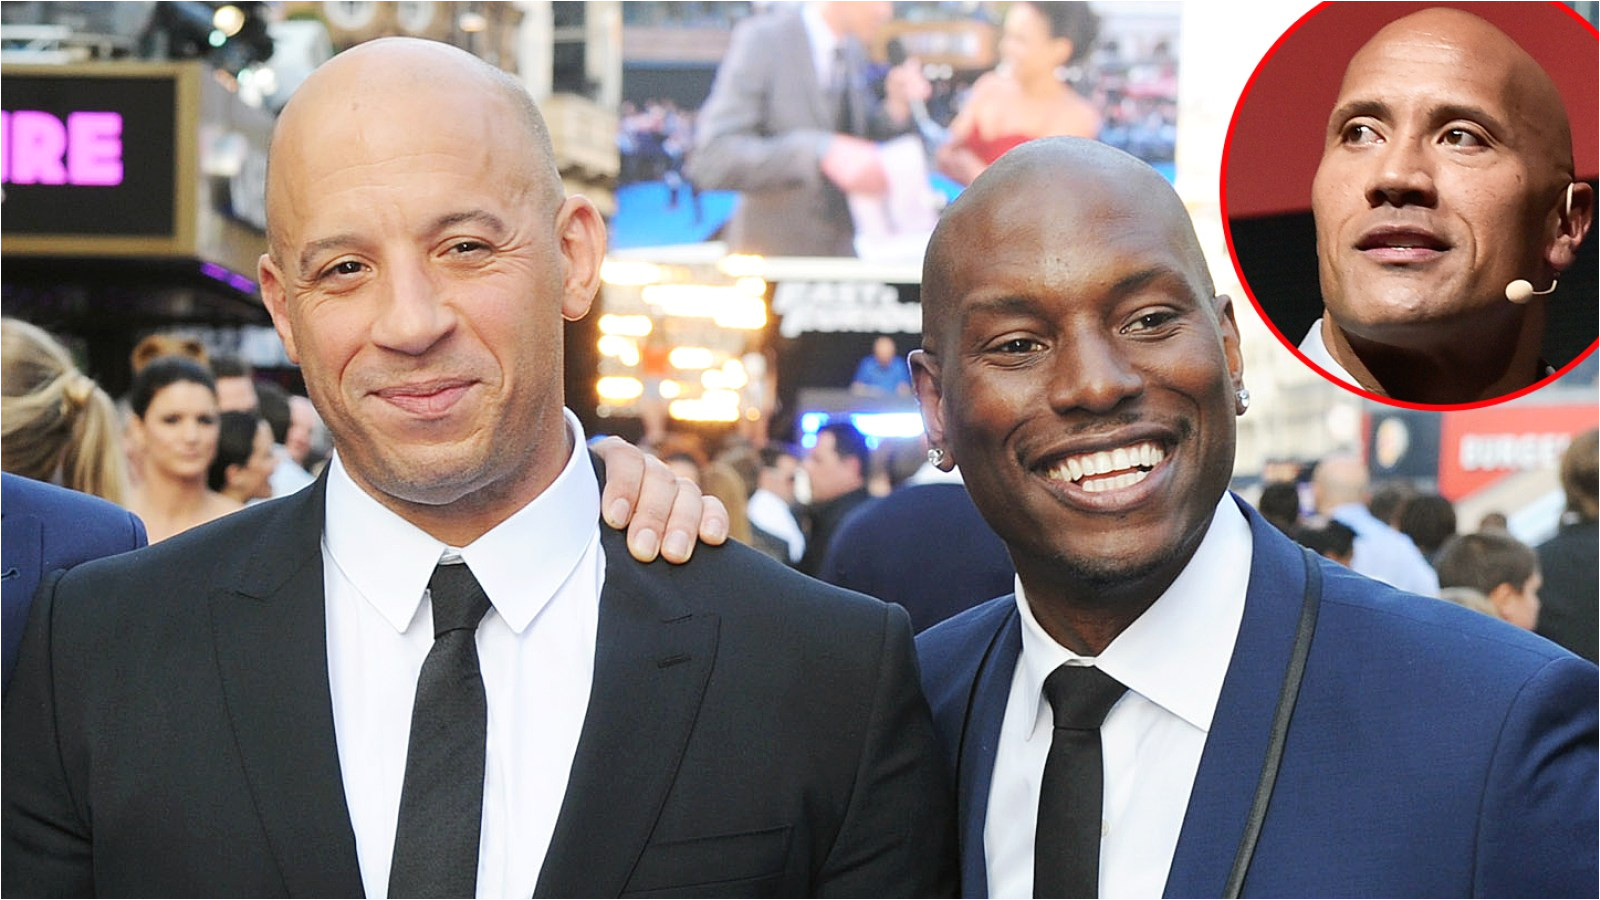 is vin diesel siding with tyrese in the rock drama pic